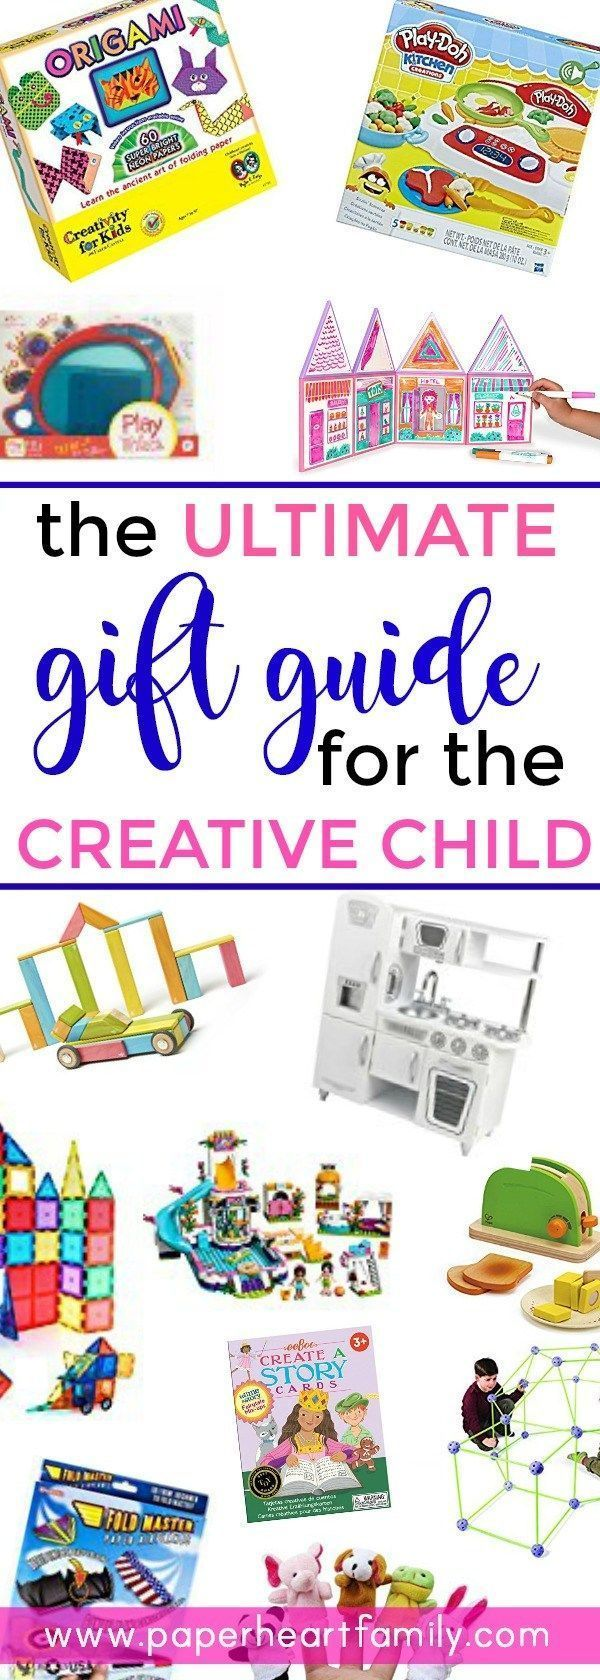 gift ideas for kids birthday | gift ideas for kids Christmas | gift guide for kids | inspire creativity in kids | gifts for creative kids | kids Christmas gifts | kids birthday gift ideas | best STEM toys | kids gift guide | best toys 2017 | pretend play | building toys for kids | best board games for kids families | artistic kids gifts | toy gift guide #kidschristmasgifts #kidsgiftguide #kidsgiftideas